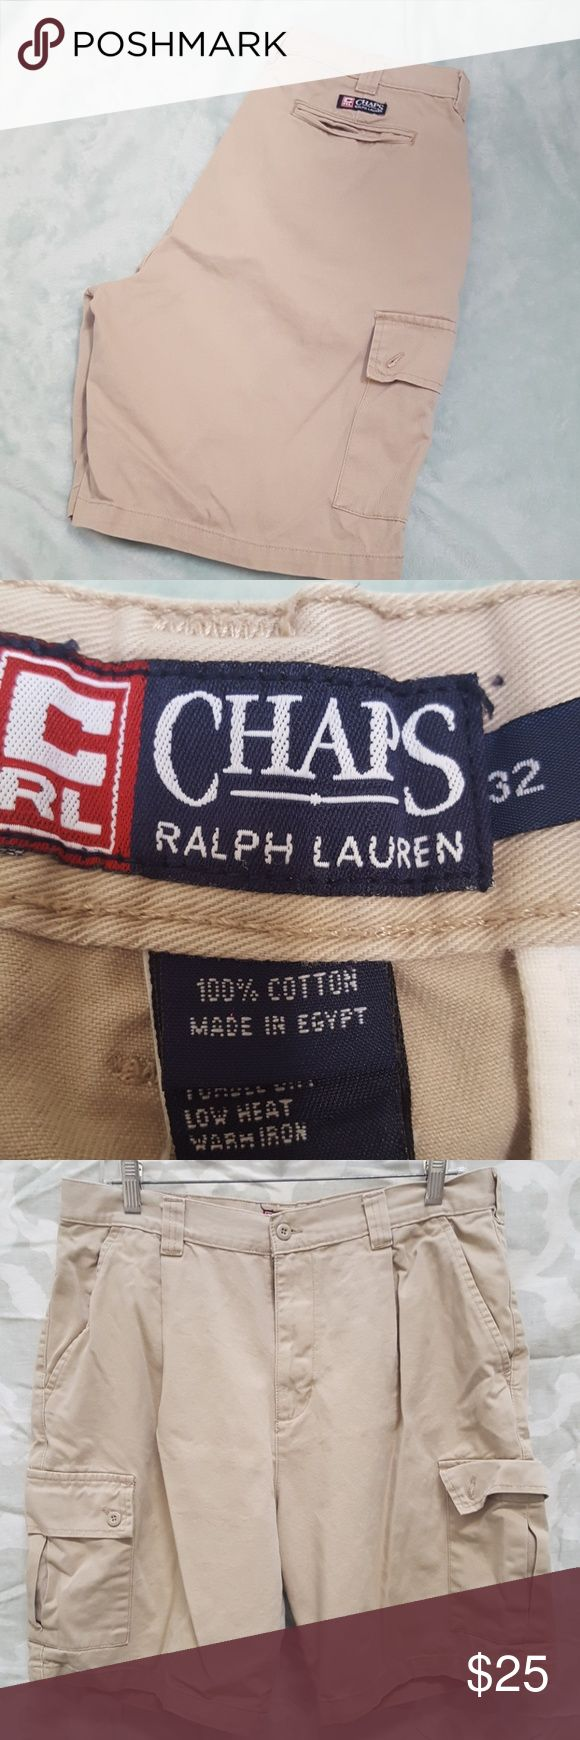 CHAPS RALPH LAUREN MEN'S KHAKI CARGO SHORTS For sale is a used pair of Mens Chaps Ralph Lauren cargo khaki shorts. they are a mens waist size 34   Shorts are in good condition for age. Normal wear  Offers welcomed using offer button.   NO TRADES.  NO LOWBALLING. Chaps Ralph Lauren Shorts Cargo